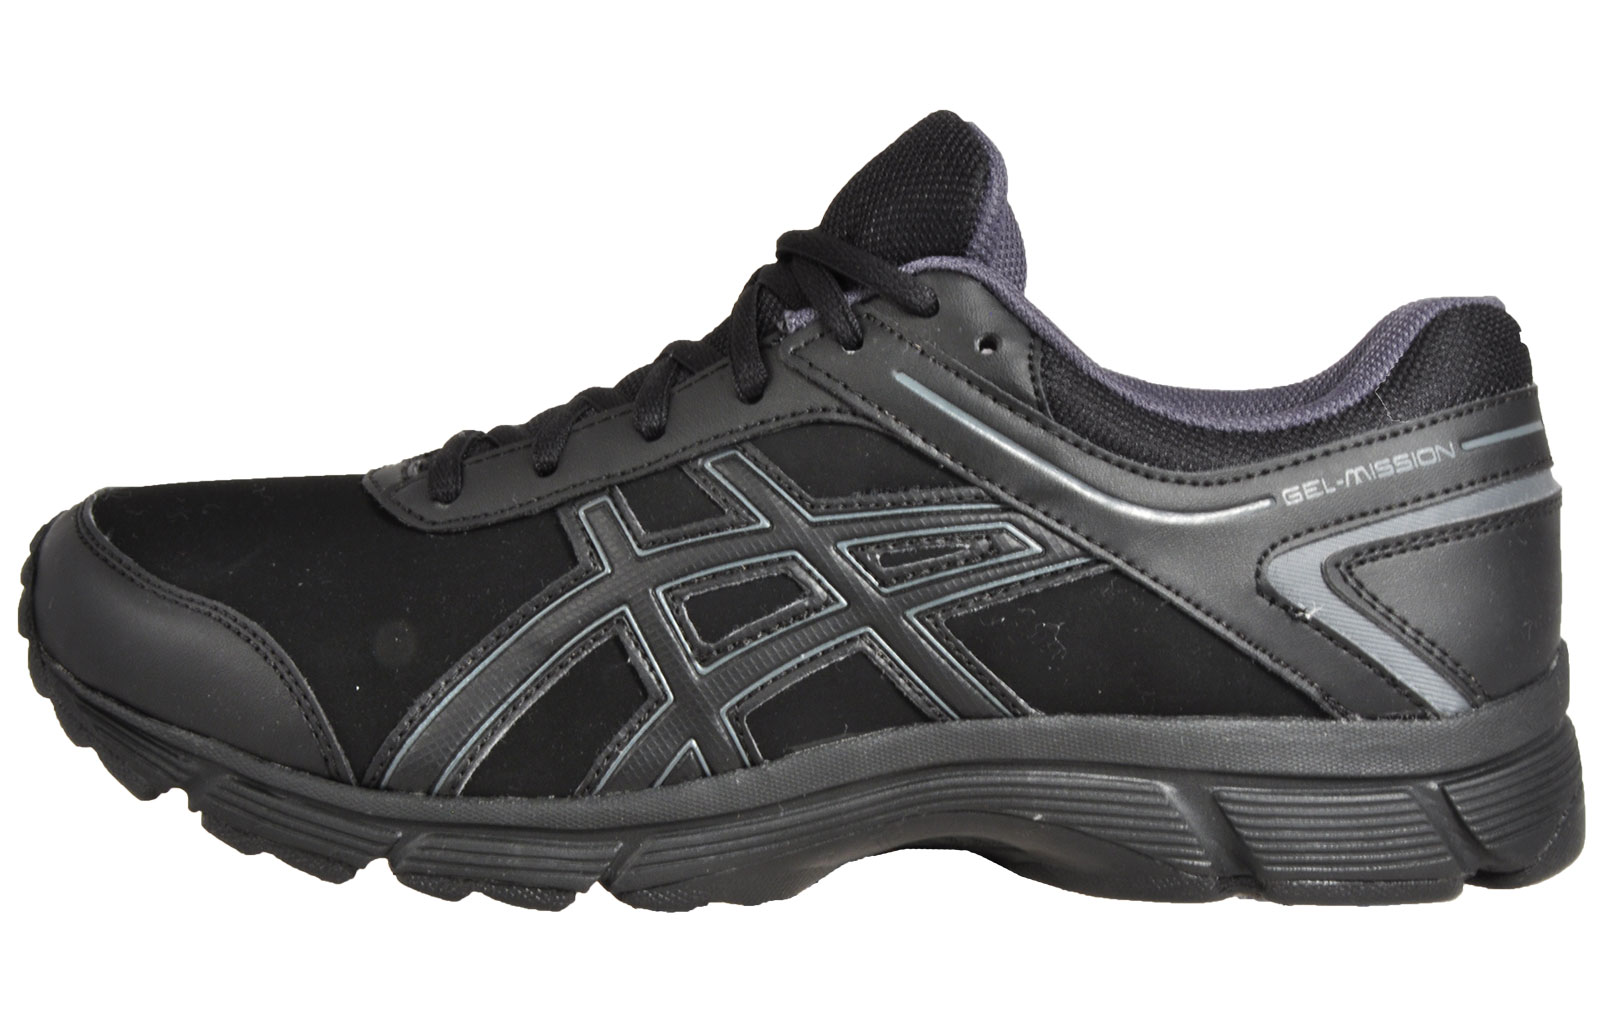 7b5a38caa663 Asics Gel Mission Men s Walking Active Fitness Gym Trainers Shoes Black